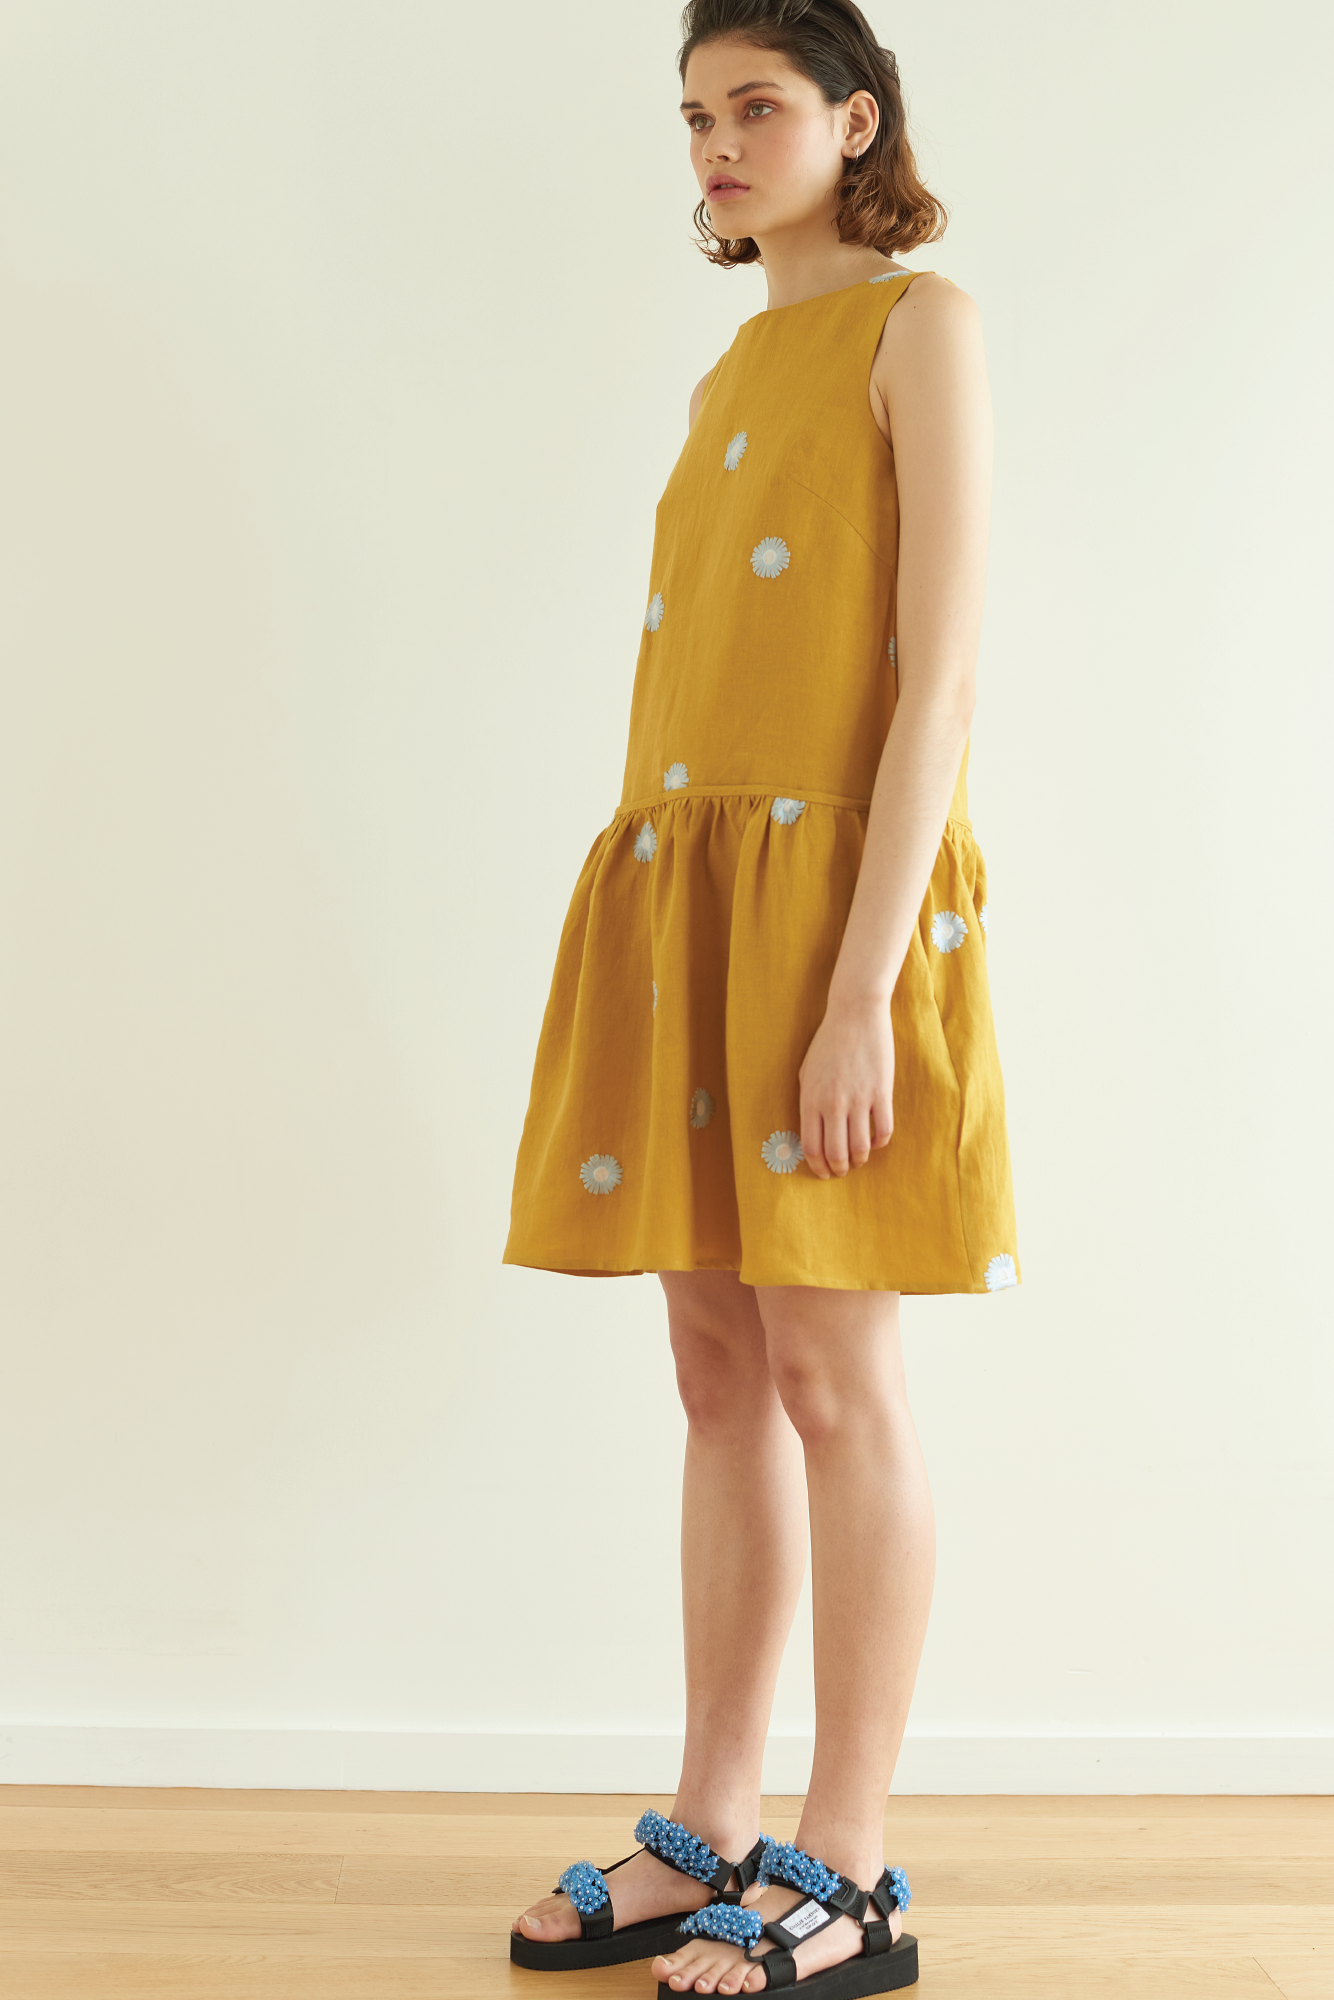 Ruffle Her Feathers Dress in Gold Daisy - hej hej